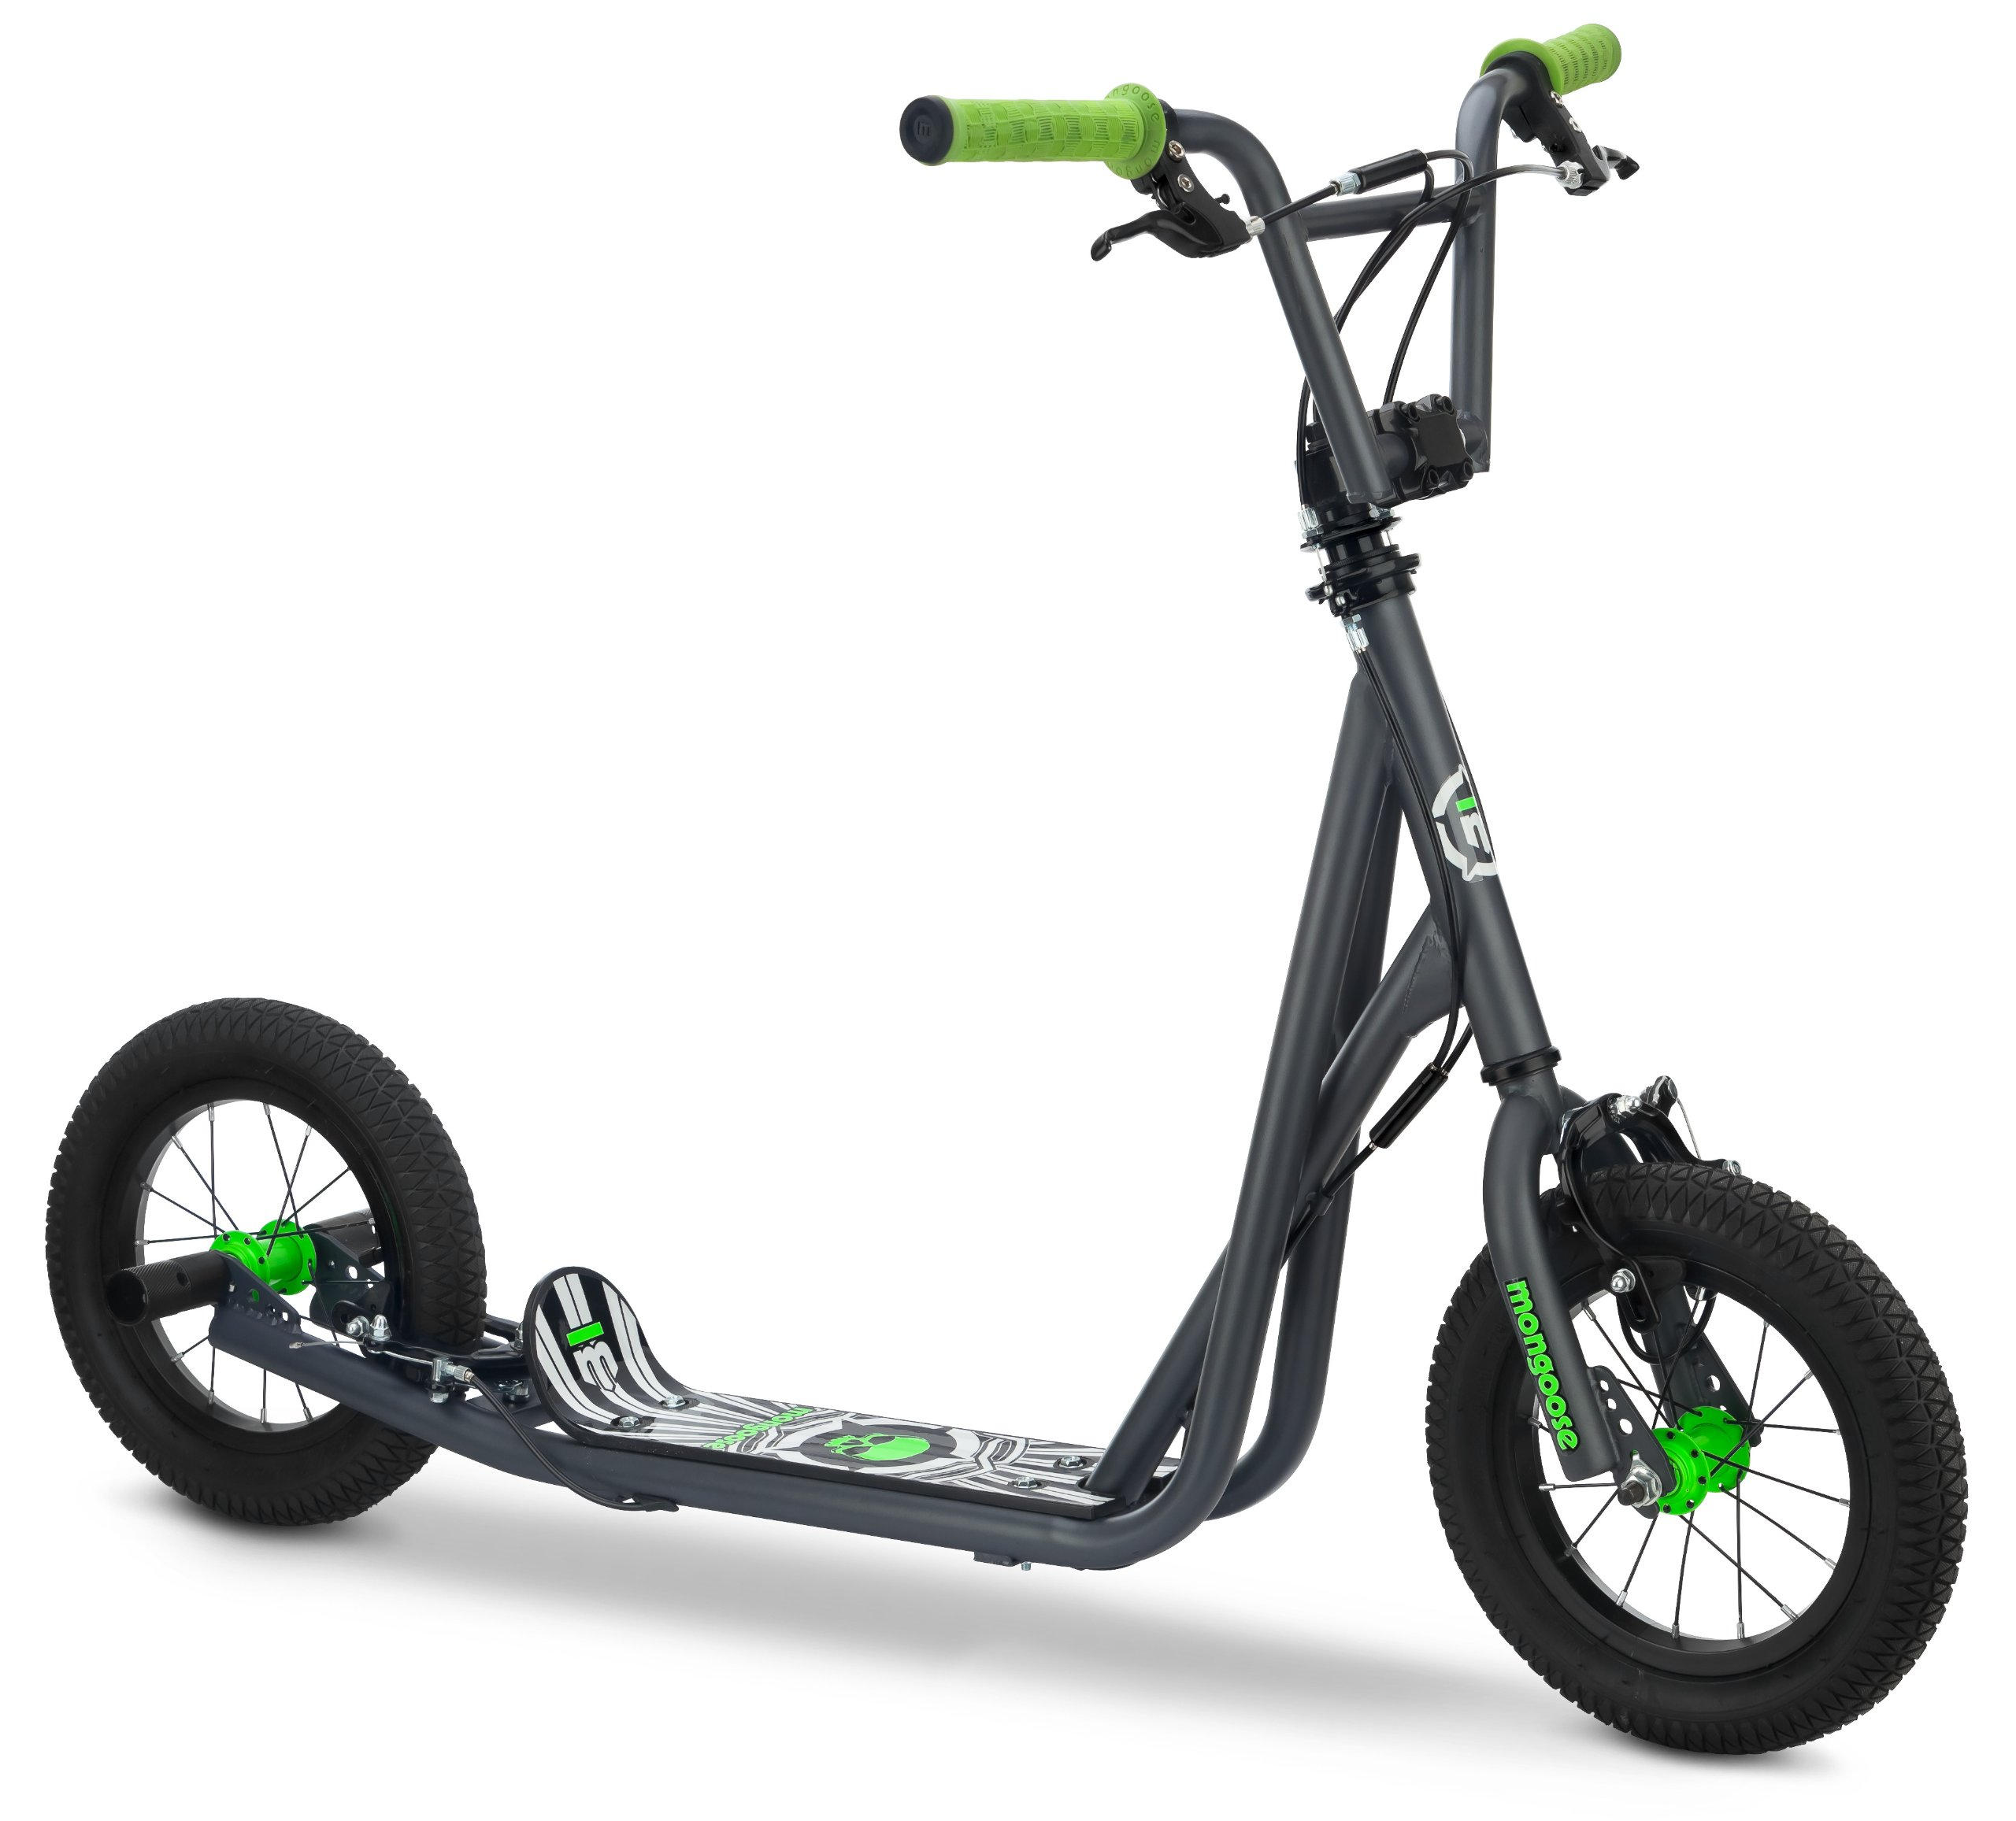 Mongoose Expo Scooter, Featuring Front and Rear Caliper Brakes and Rear Axle Pegs with 12-Inch Inflatable Wheels, Green/Grey by Mongoose